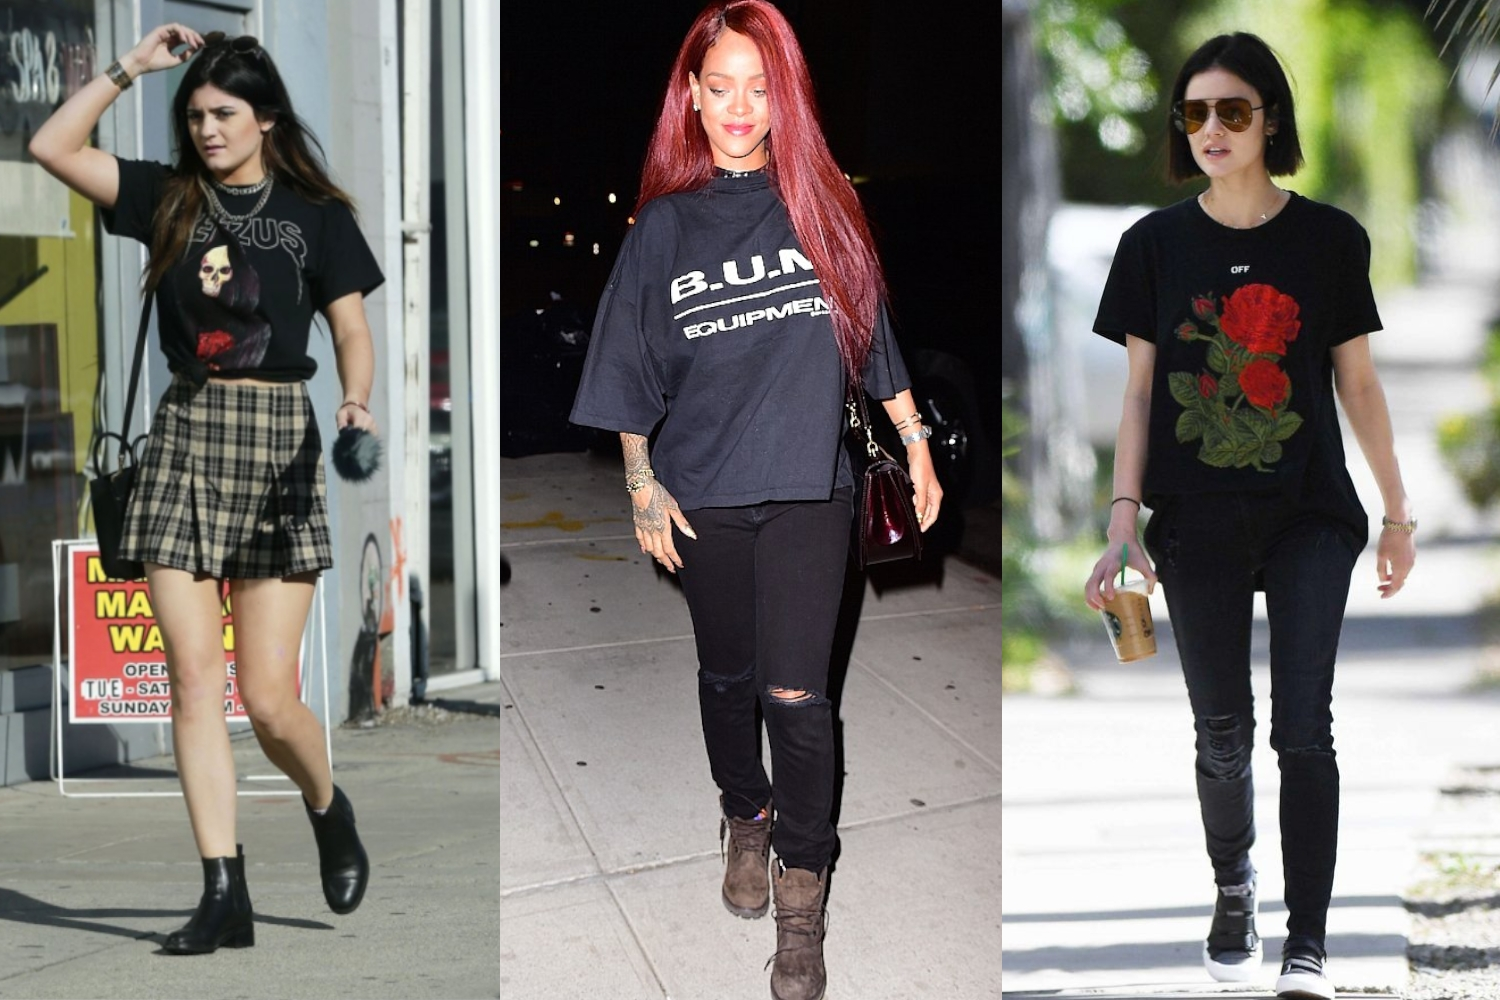 Kylie Jenner, Rihanna & Lucy Hale wearing grunge 90s outfits